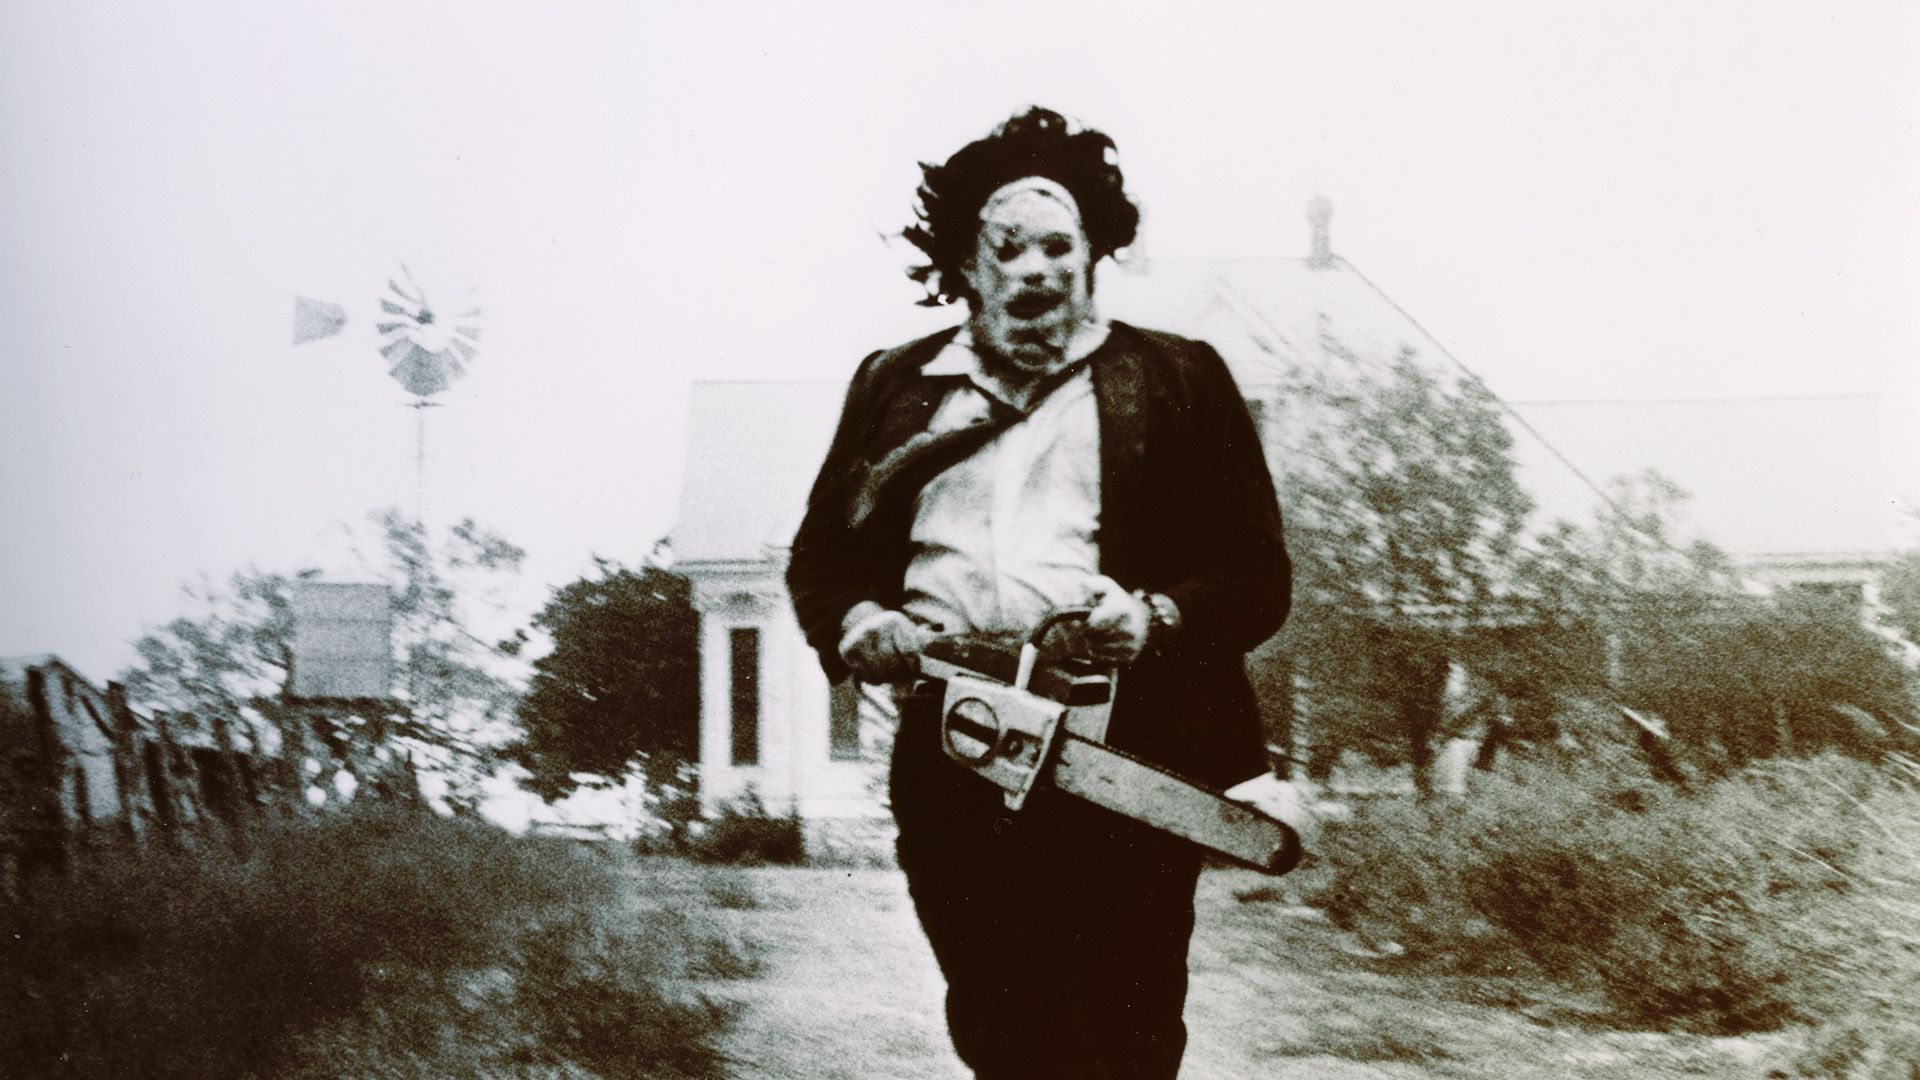 6. Leatherface – Texas Chainsaw Massacre